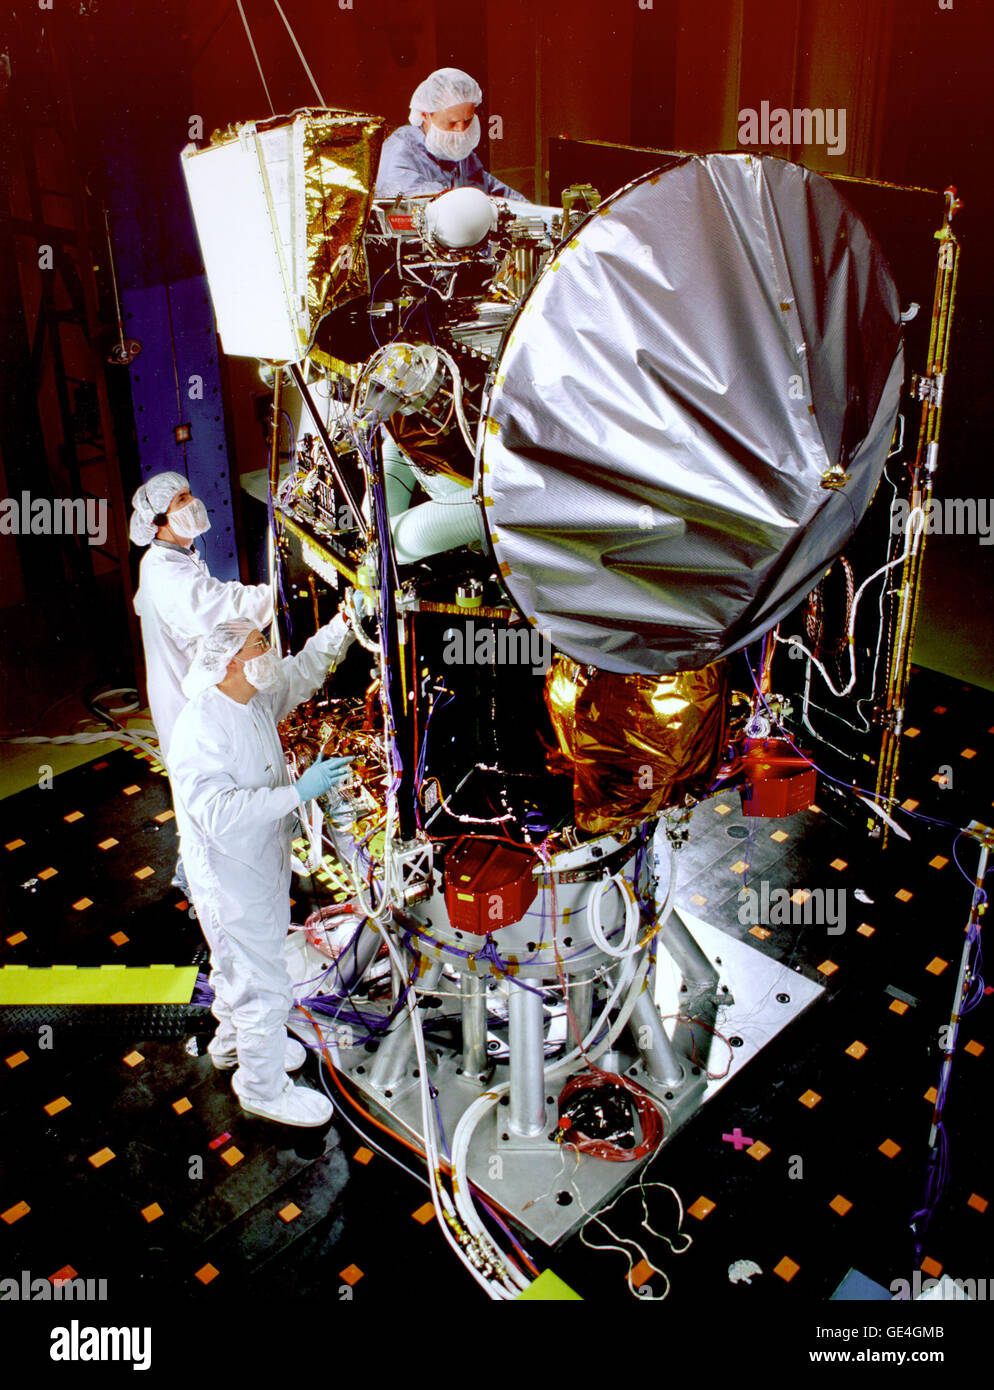 (May 27, 1998) The Mars Surveyor '98 Climate Orbiter is shown here during acoustic tests that simulate launch - Stock Image